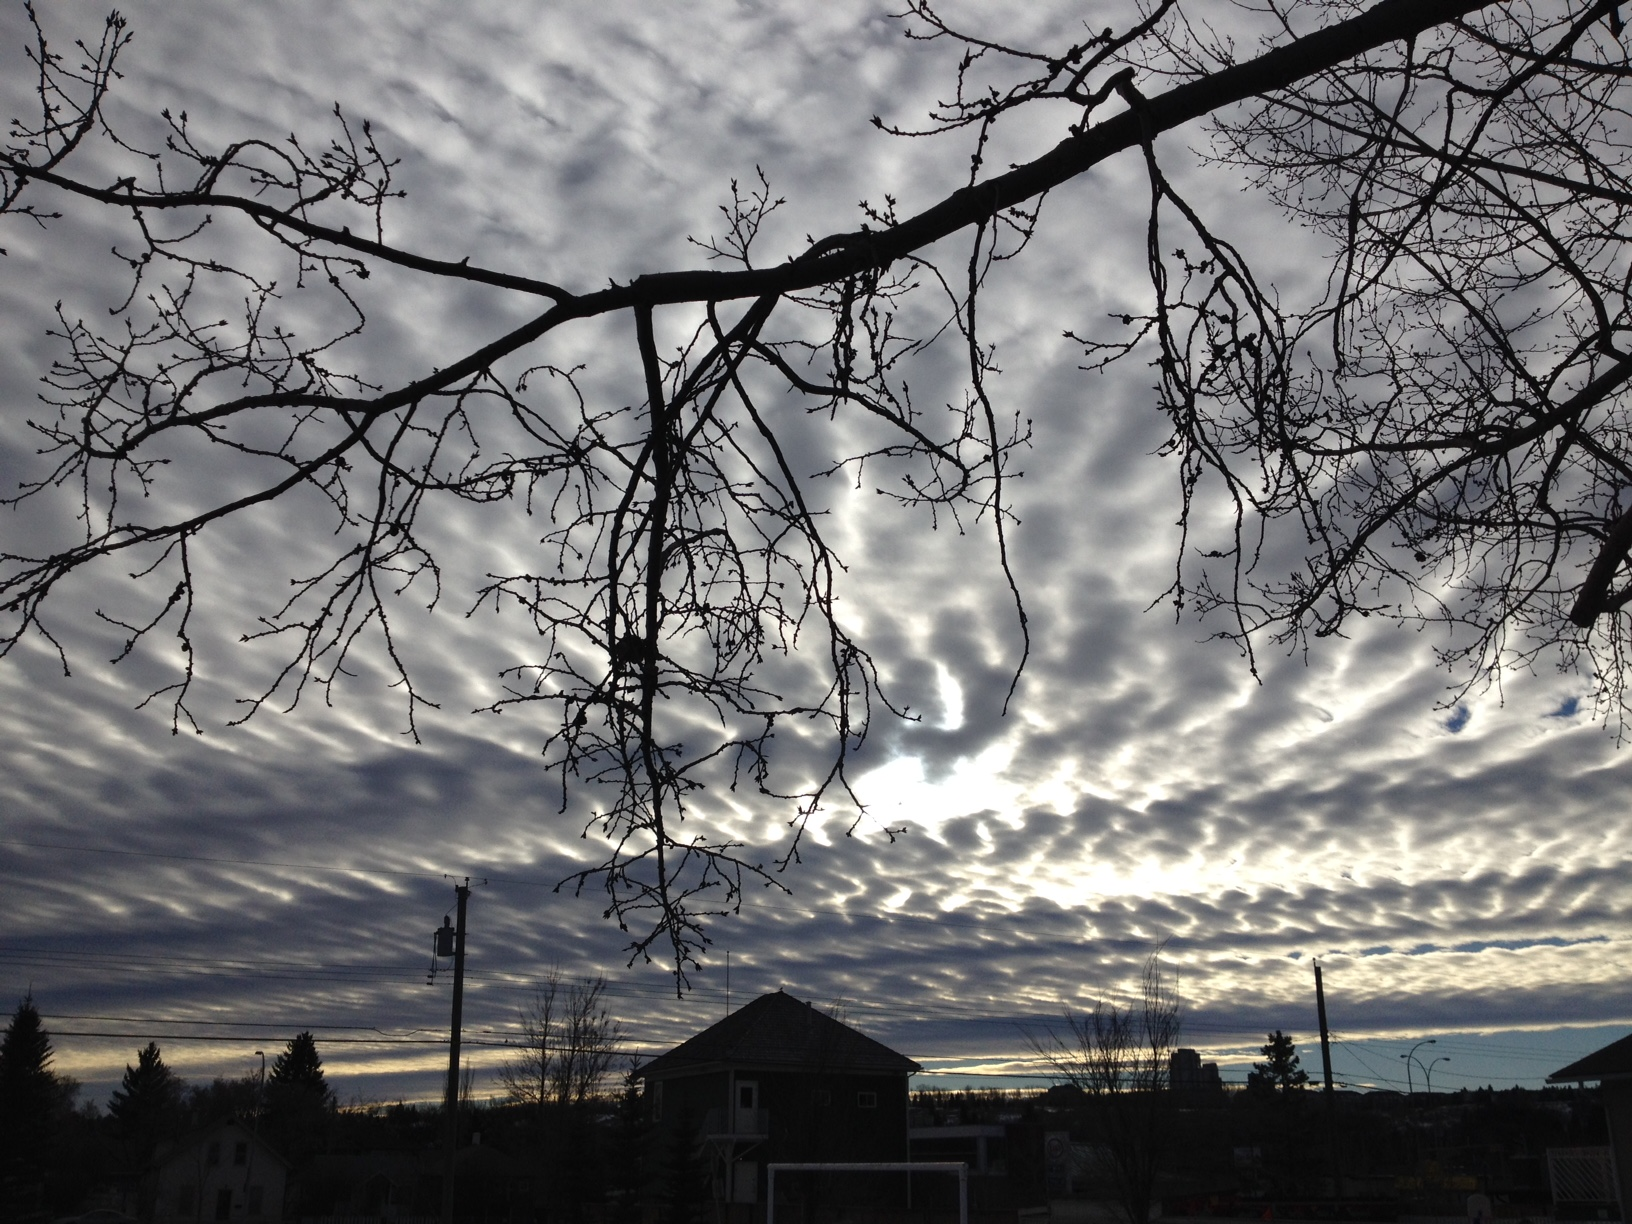 Ripple Clouds, Grand Trunk Park, my front yard, Calgary